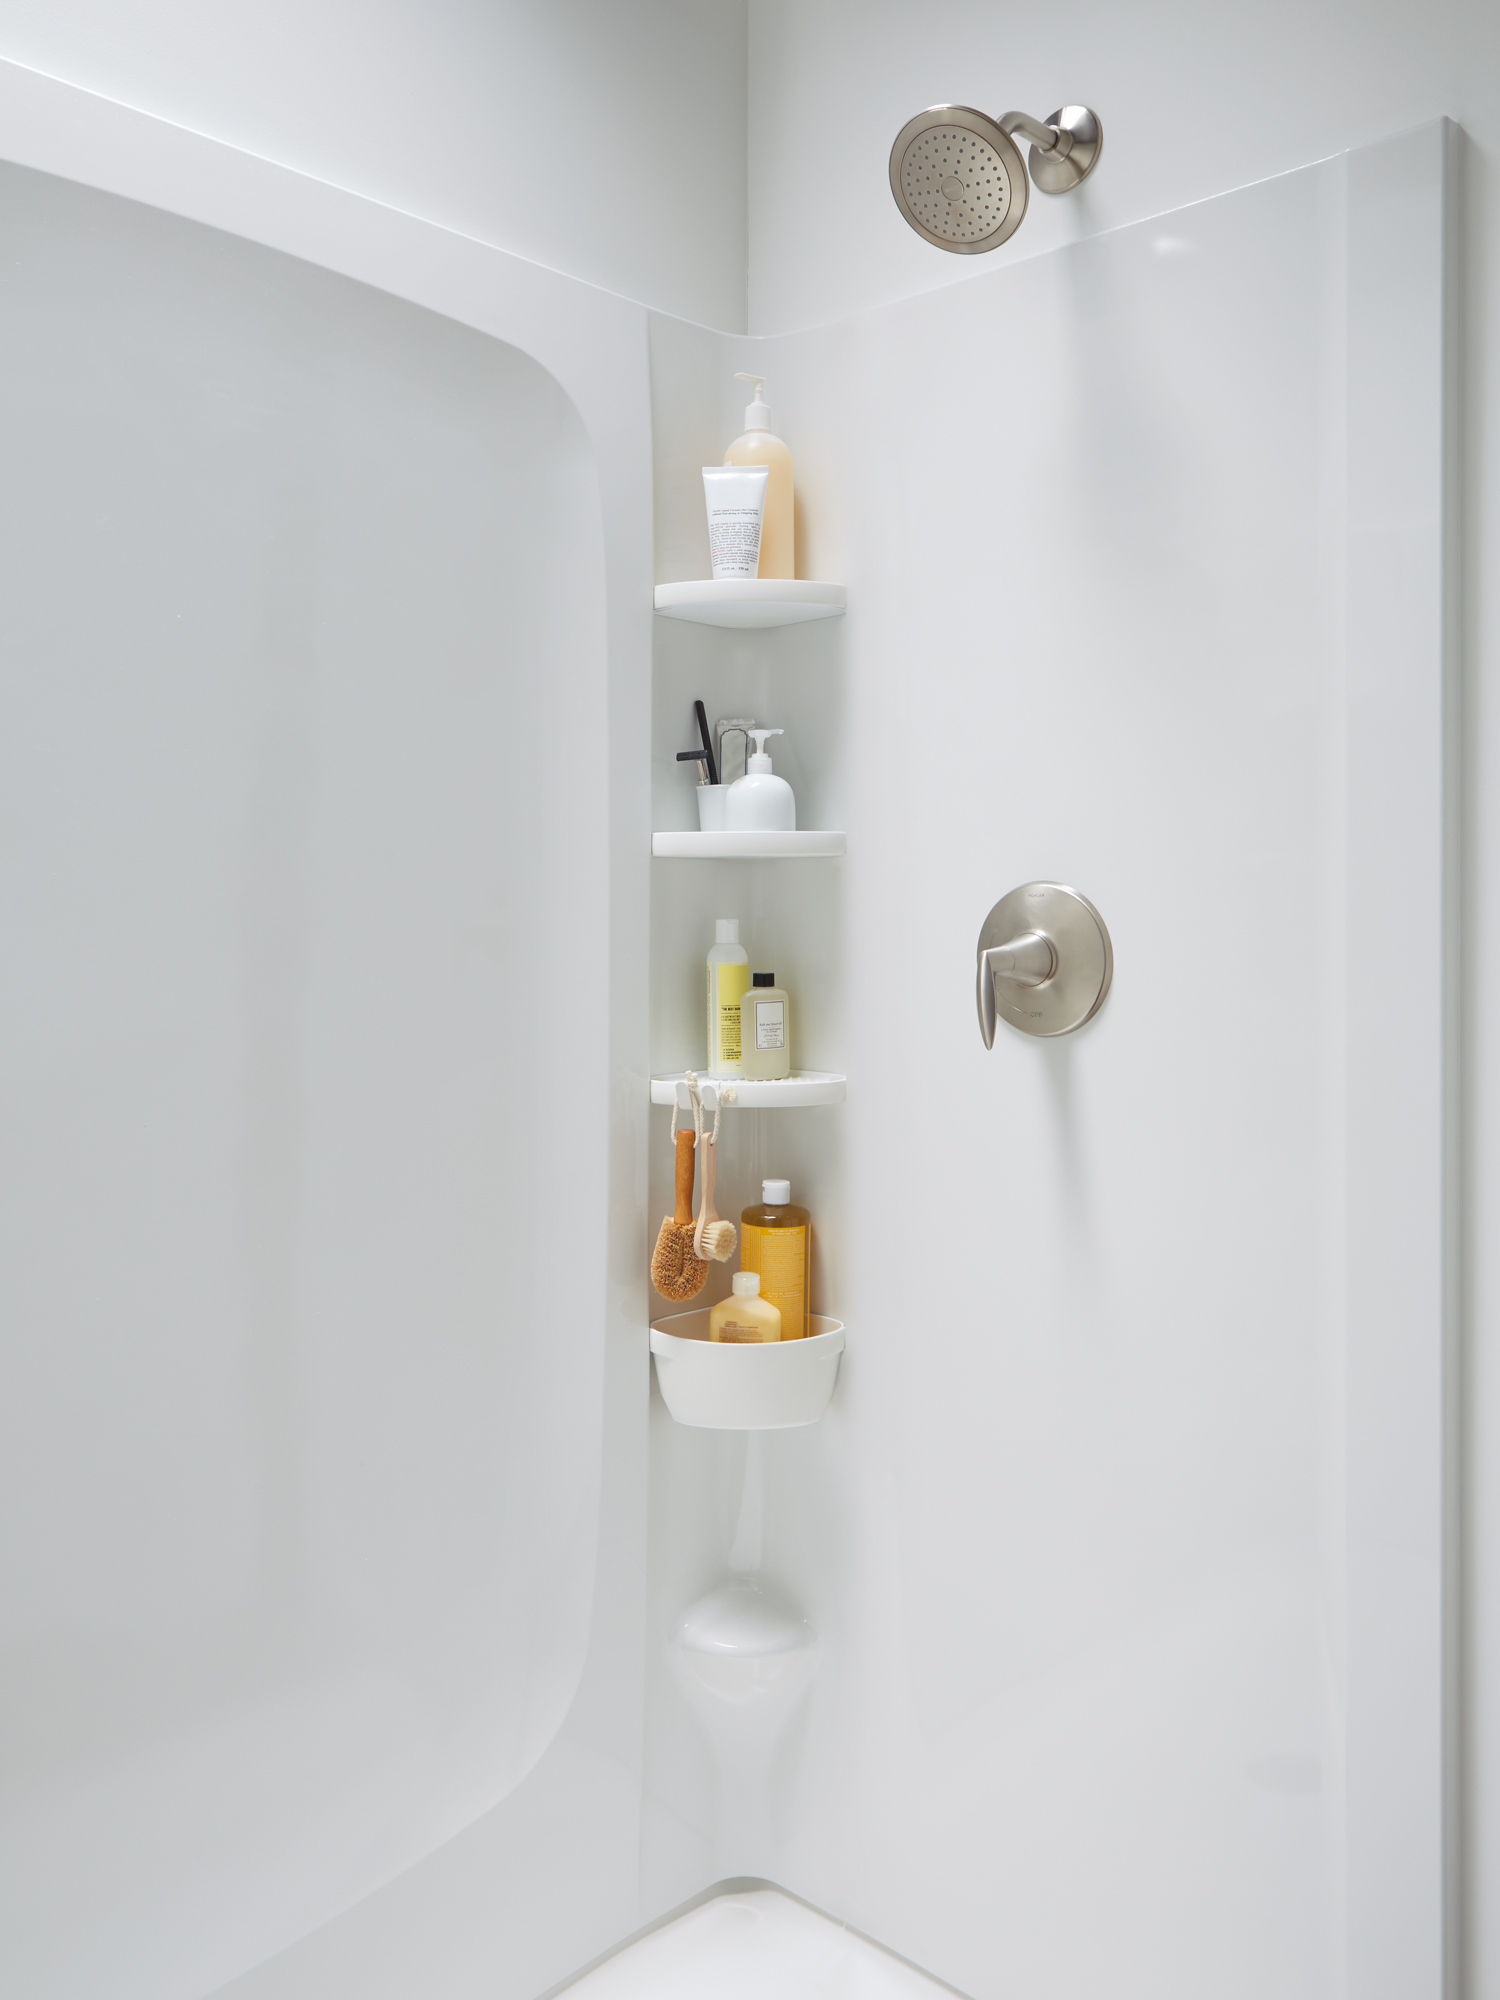 Store More In The Shower With Sterling S Store Jlc Online